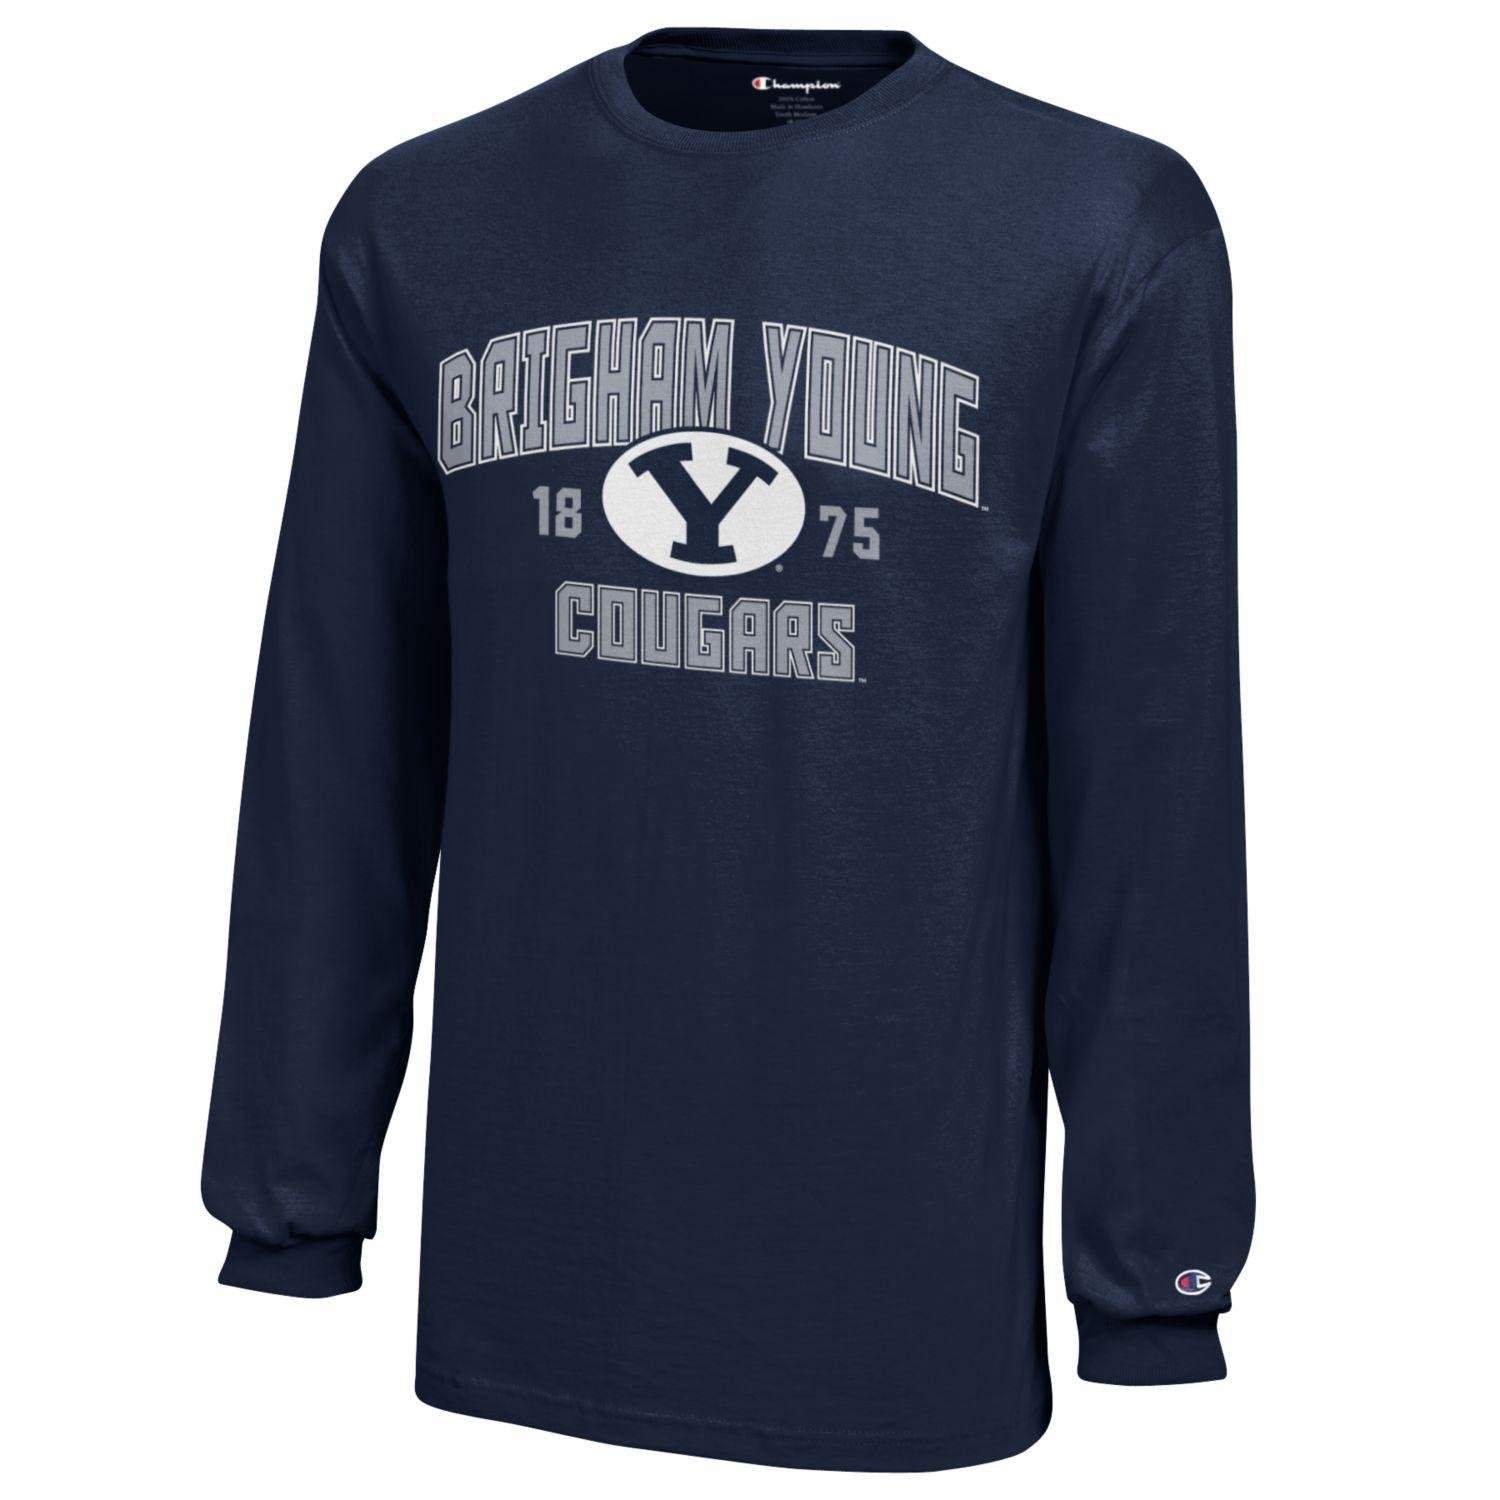 reputable site 31945 6cd07 NCAA Champion Boy's Long Sleeve Jersey T-Shirt BYU Cougars Small